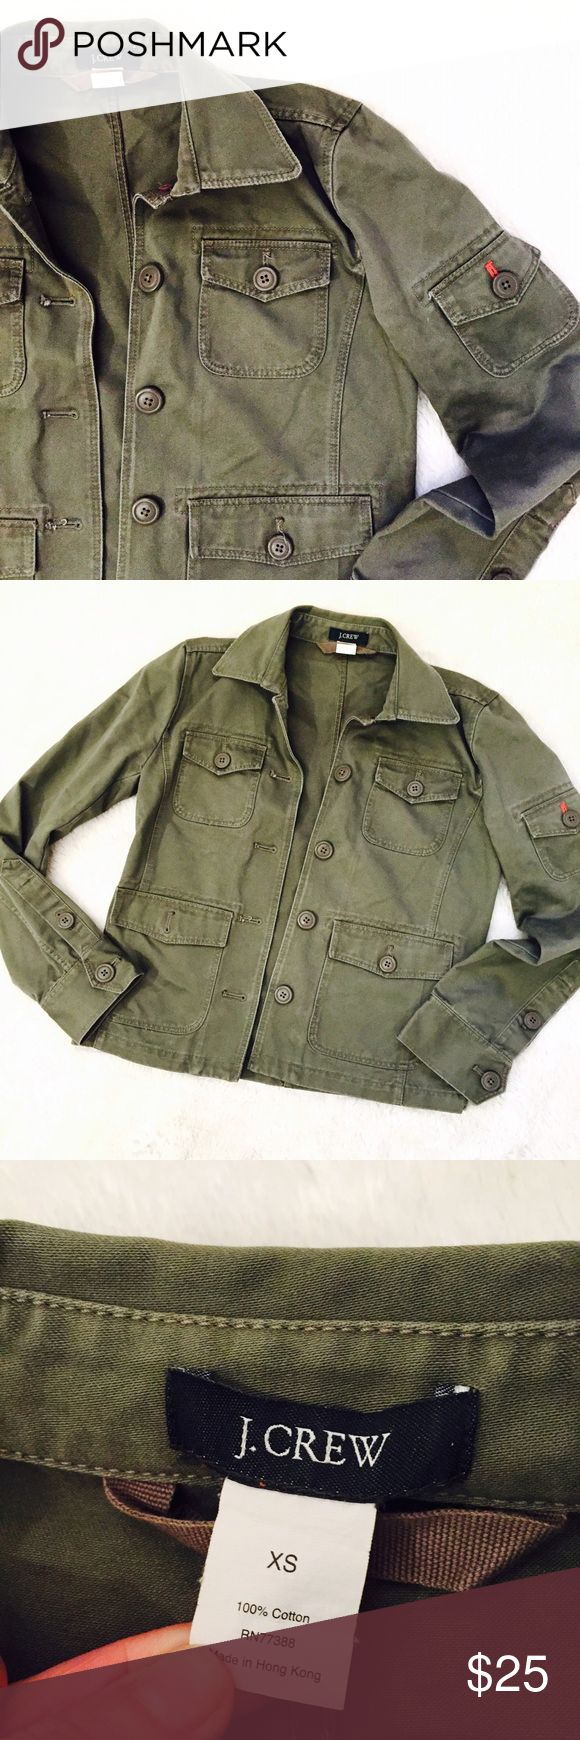 🆕 J. Crew Utility Jacket XS Women's military utility jacket by J. Crew. In an olive green color called Light Tent. Size XS in gently pre owned condition. Ready to wear. Perfect layering coat. Patch pockets. J. Crew Jackets & Coats Utility Jackets